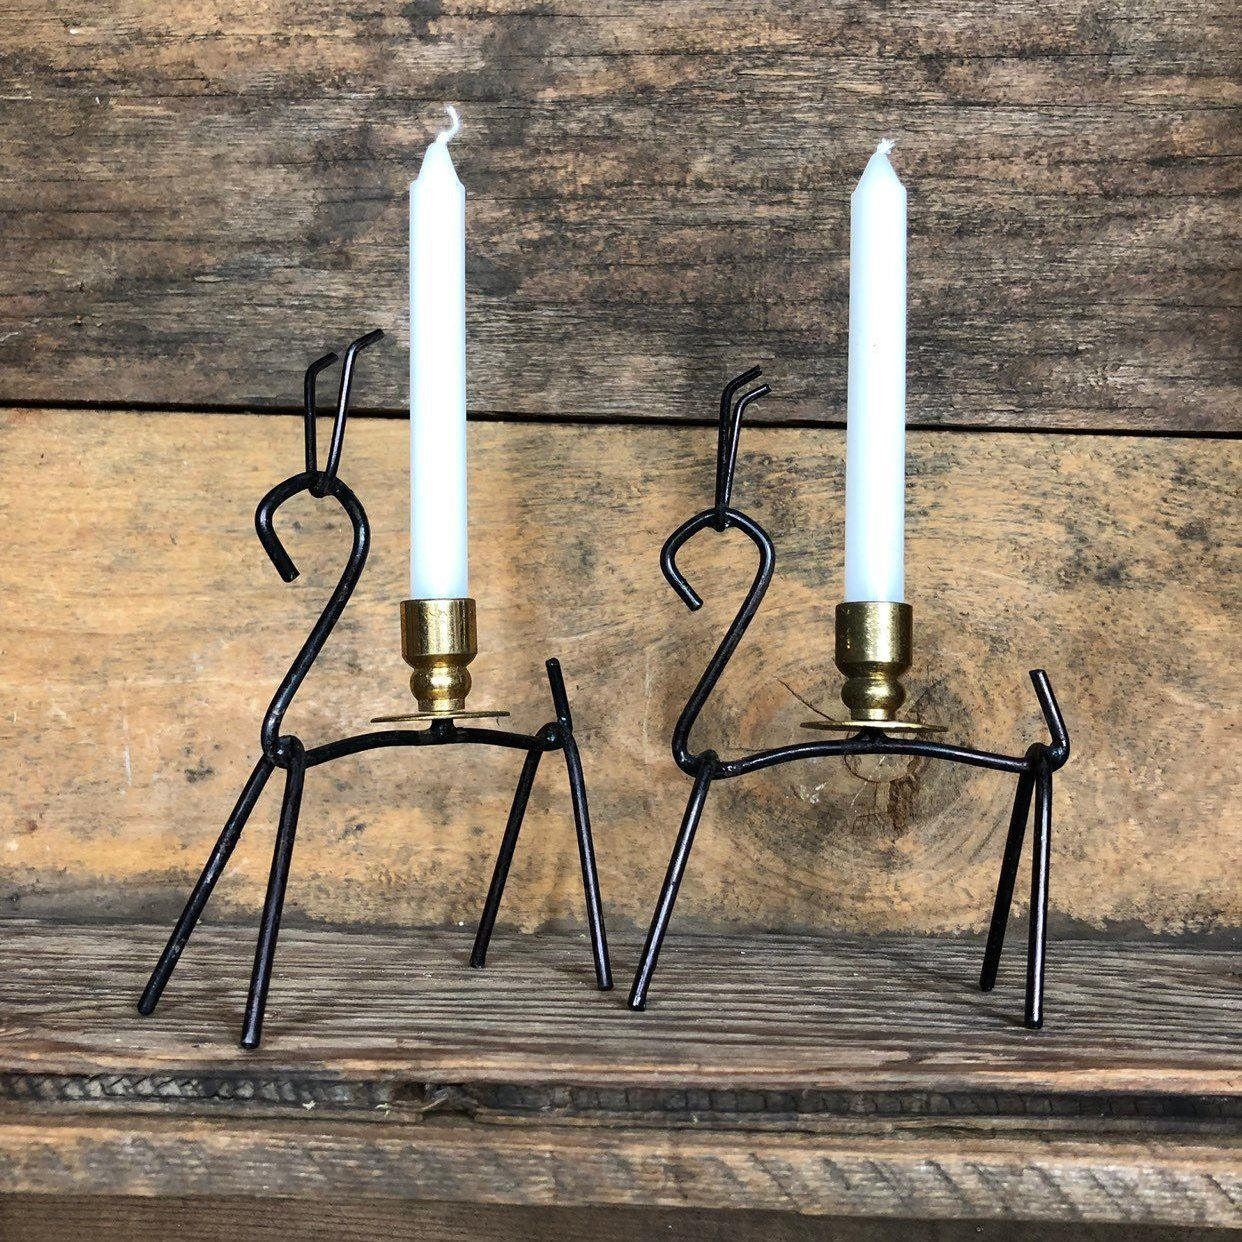 Two Mid Century Modern Scandinavian Metal Candlestick Holders Etsy Vintage Candle Holders Metal Candlestick Holders Metal Candlesticks